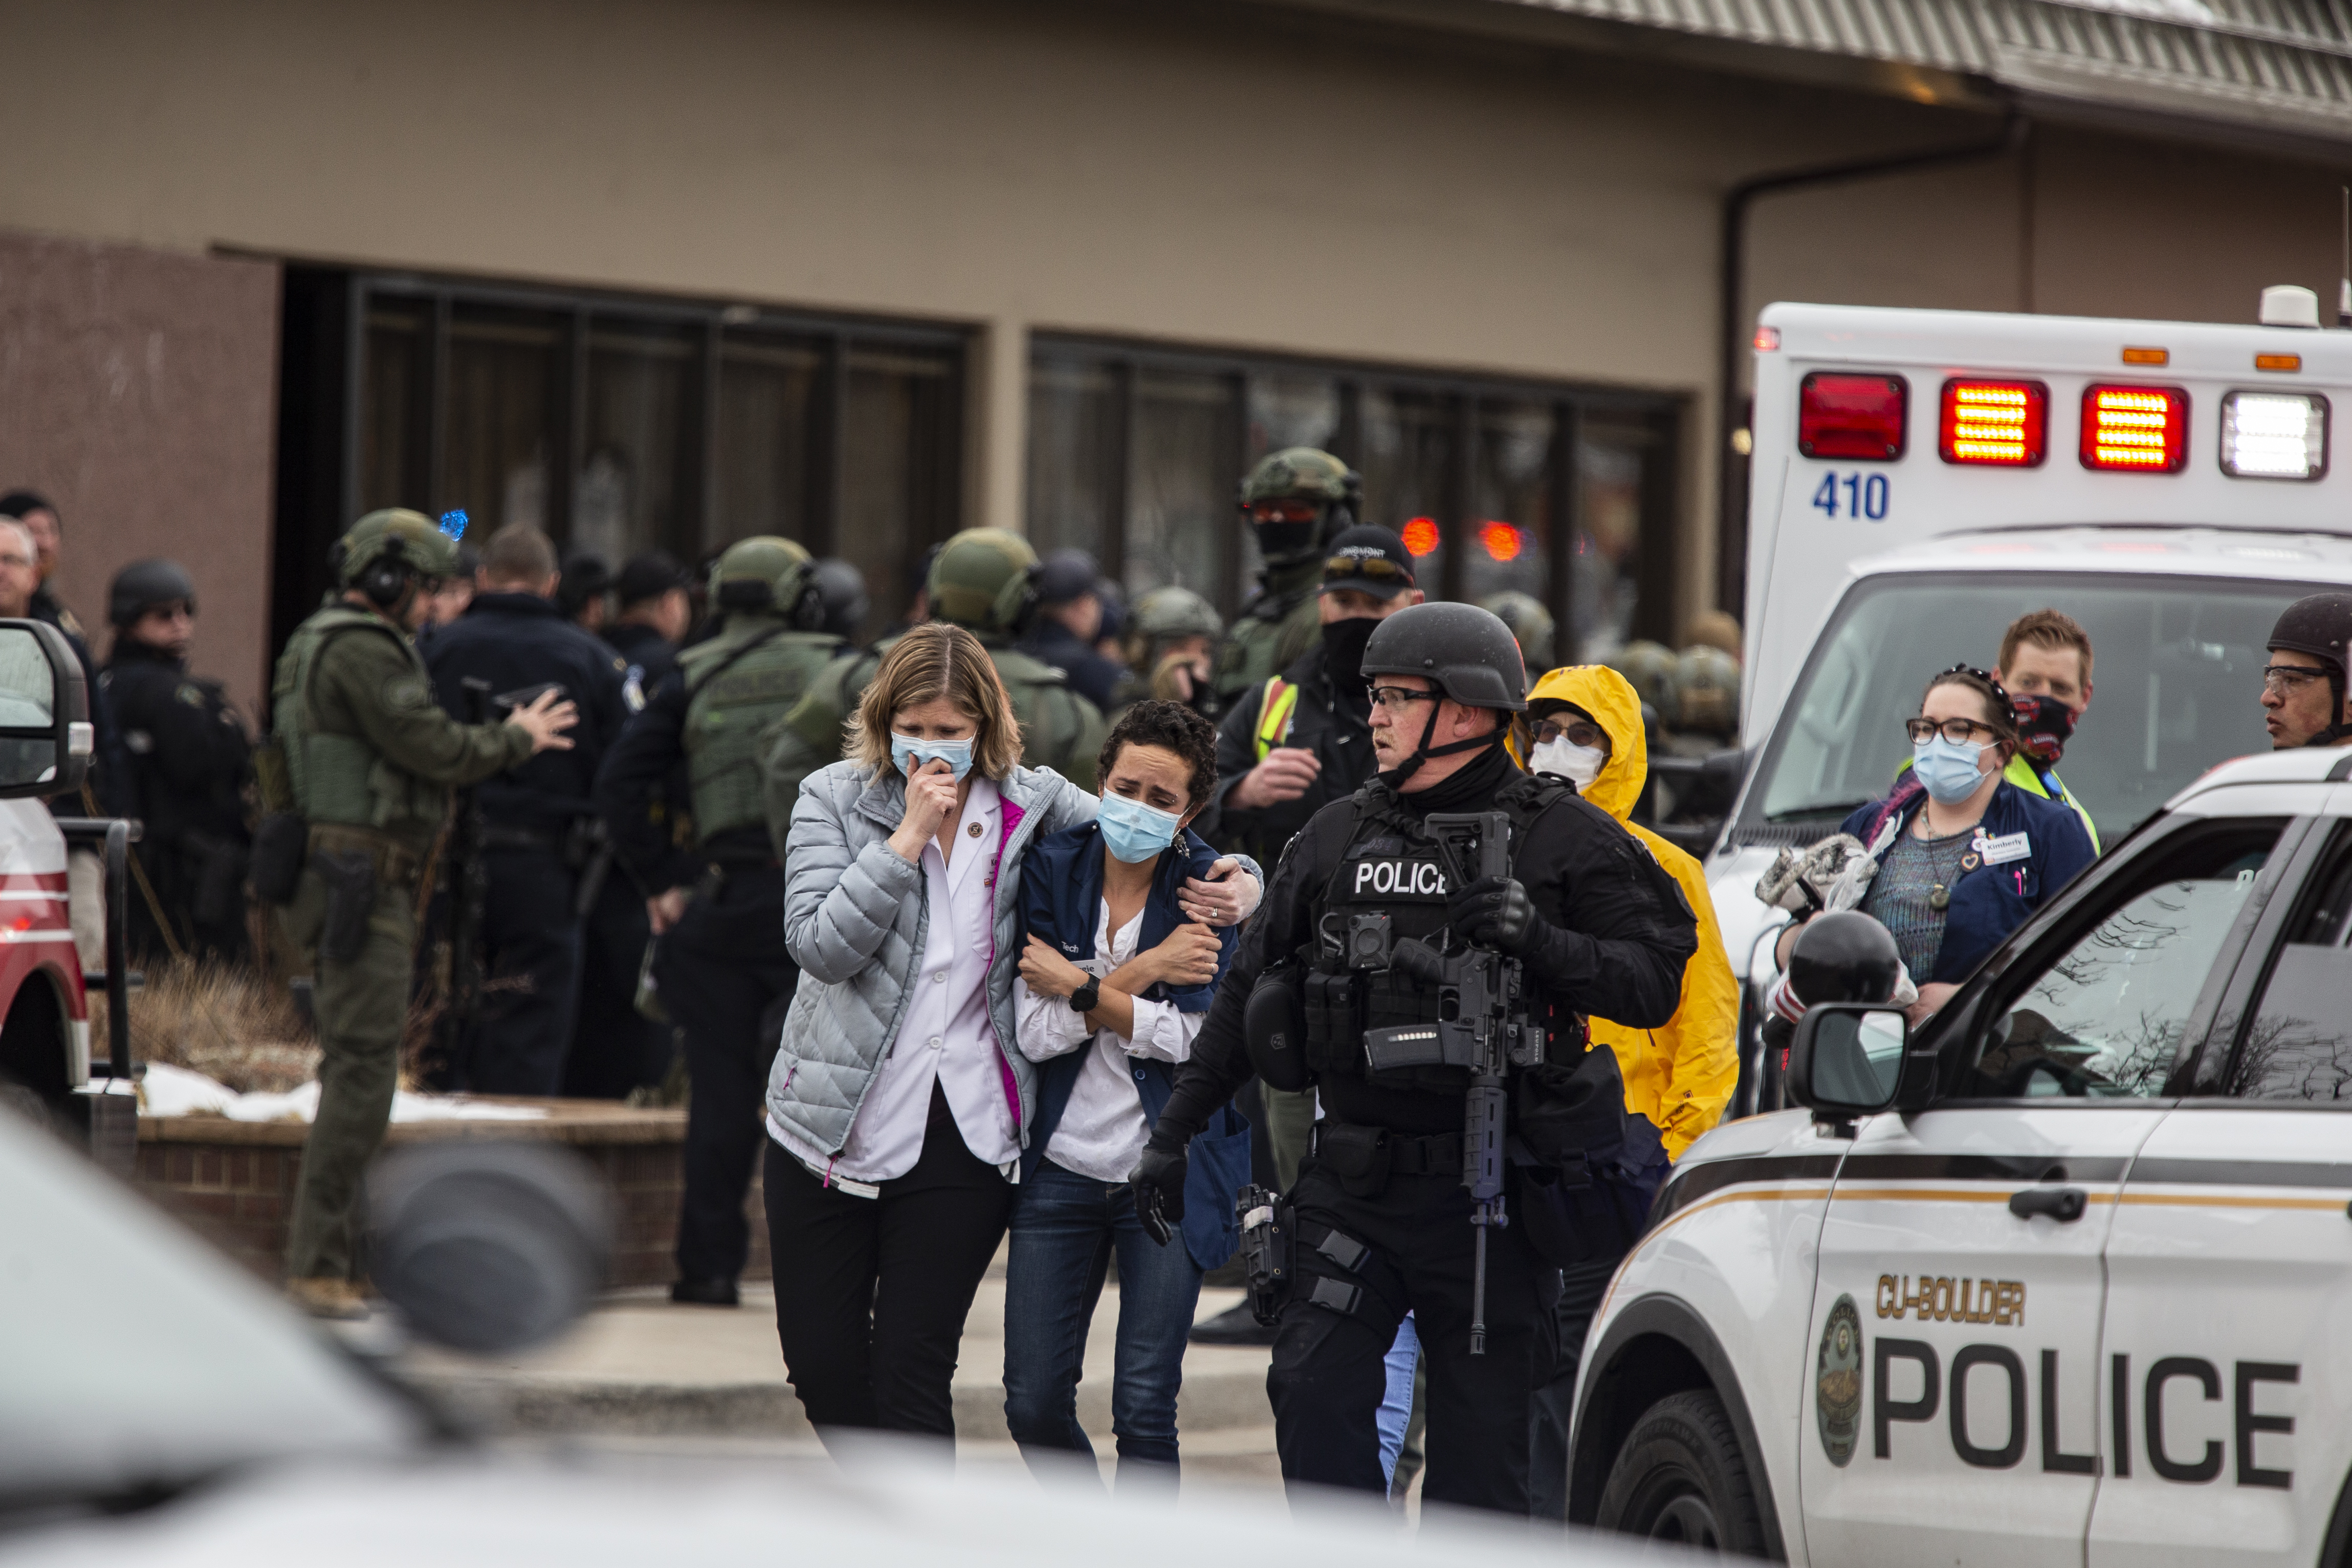 People exit a grocery store after a gunman opened fire on March 22, 2021 in Boulder, Colorado.